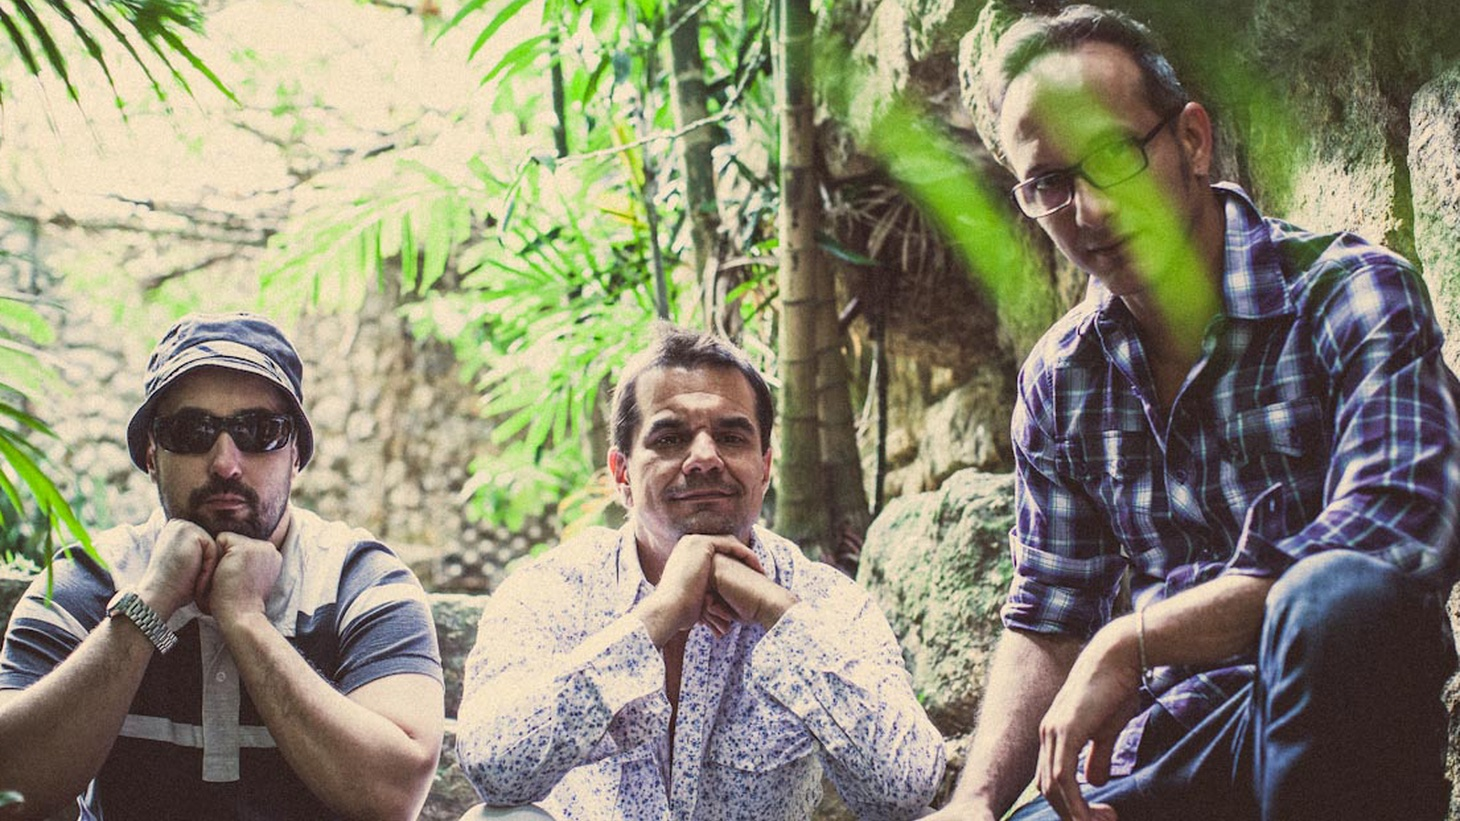 """In honor of the Olympics, we turn to Brazilian artists Bossacucanova who combine the sway of Bossa Nova with electronic groove-based dance music or, as their name reveals, """"Bossa with a new mind."""""""